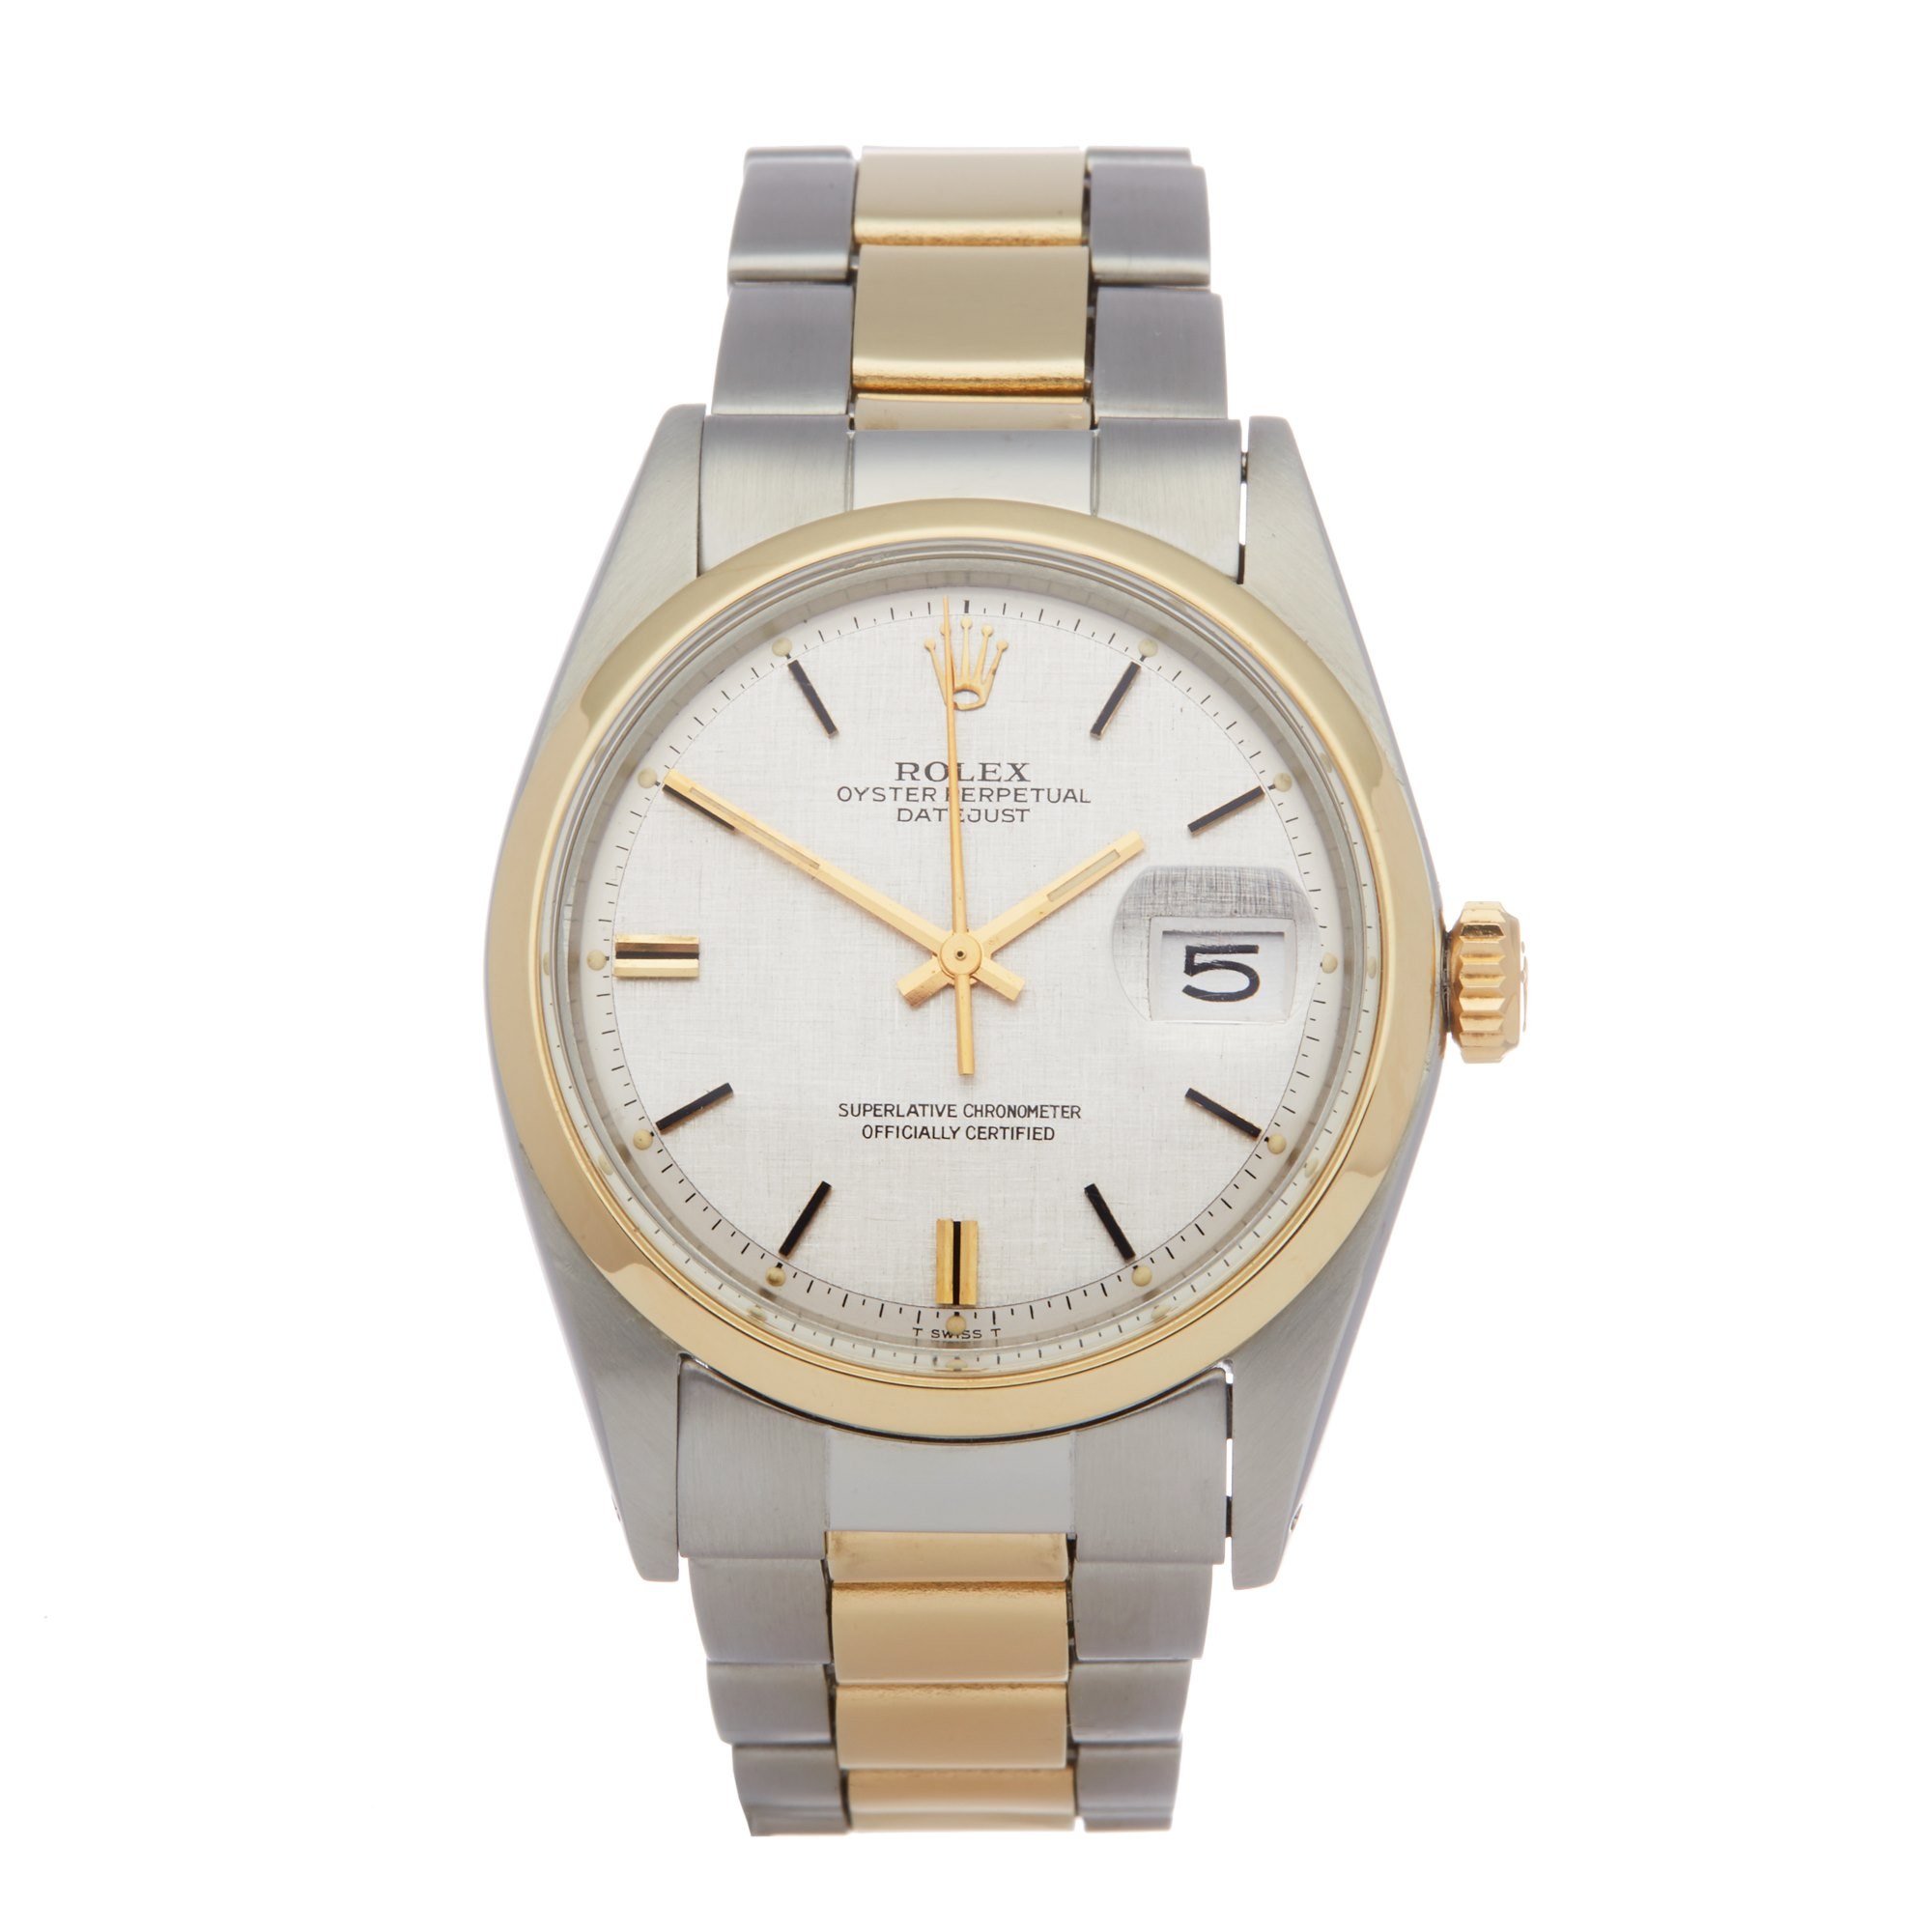 Rolex Datejust 36 18K Yellow Gold & Stainless Steel 1600